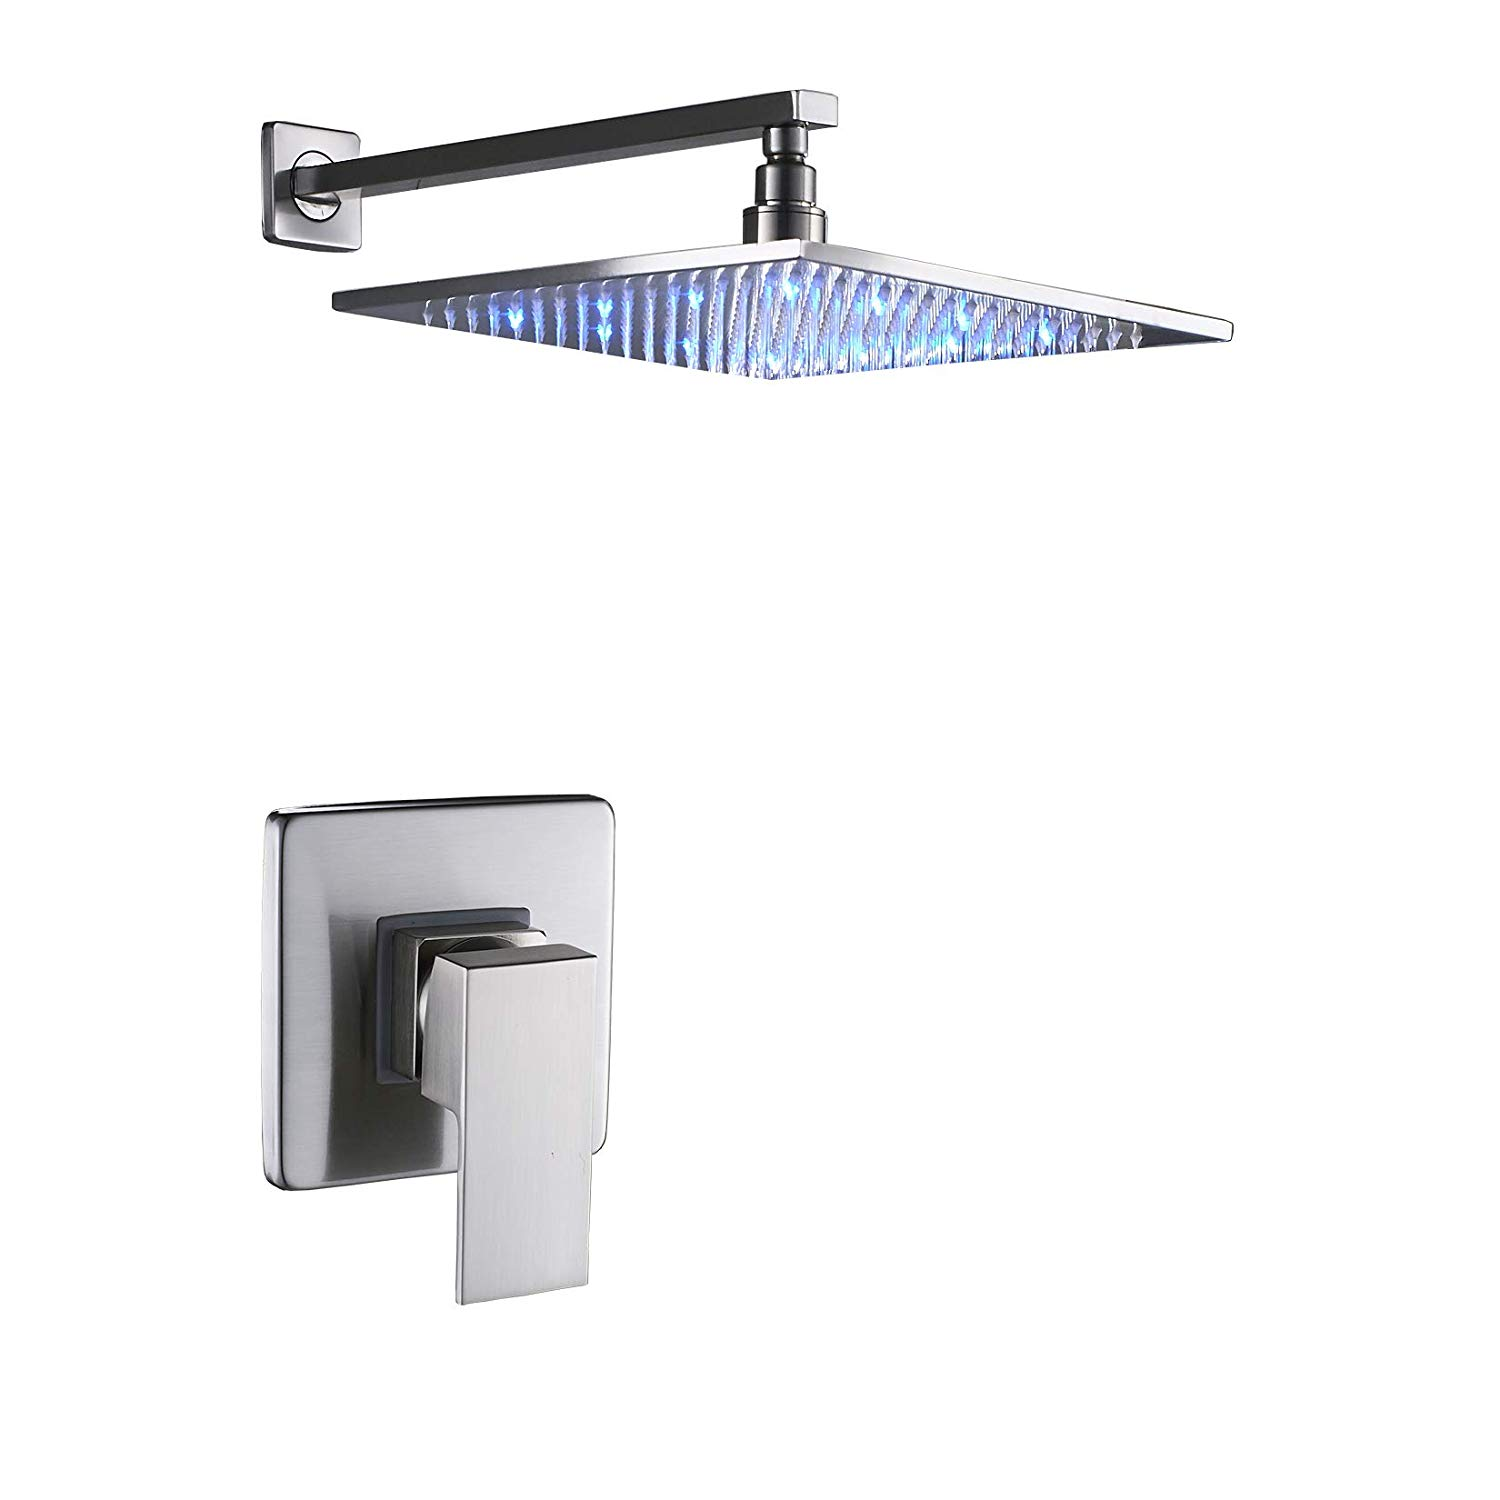 Buy Rozin Brushed Nickel 12 Inch Shower Faucet Extension Tube Bar